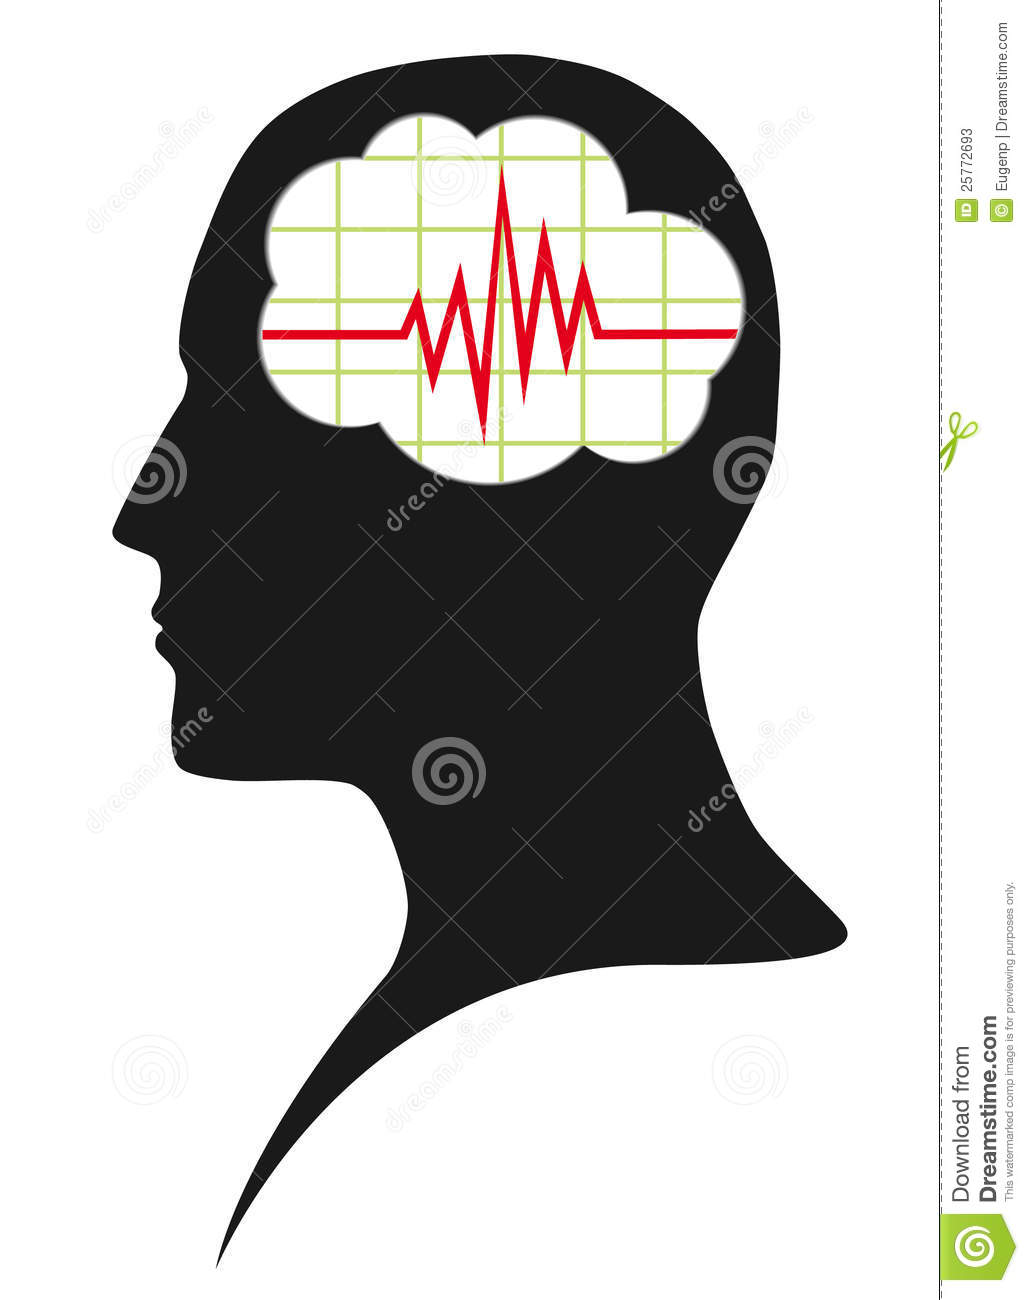 Diagram Of Brain Activity Stock Vector Illustration Of Doctor